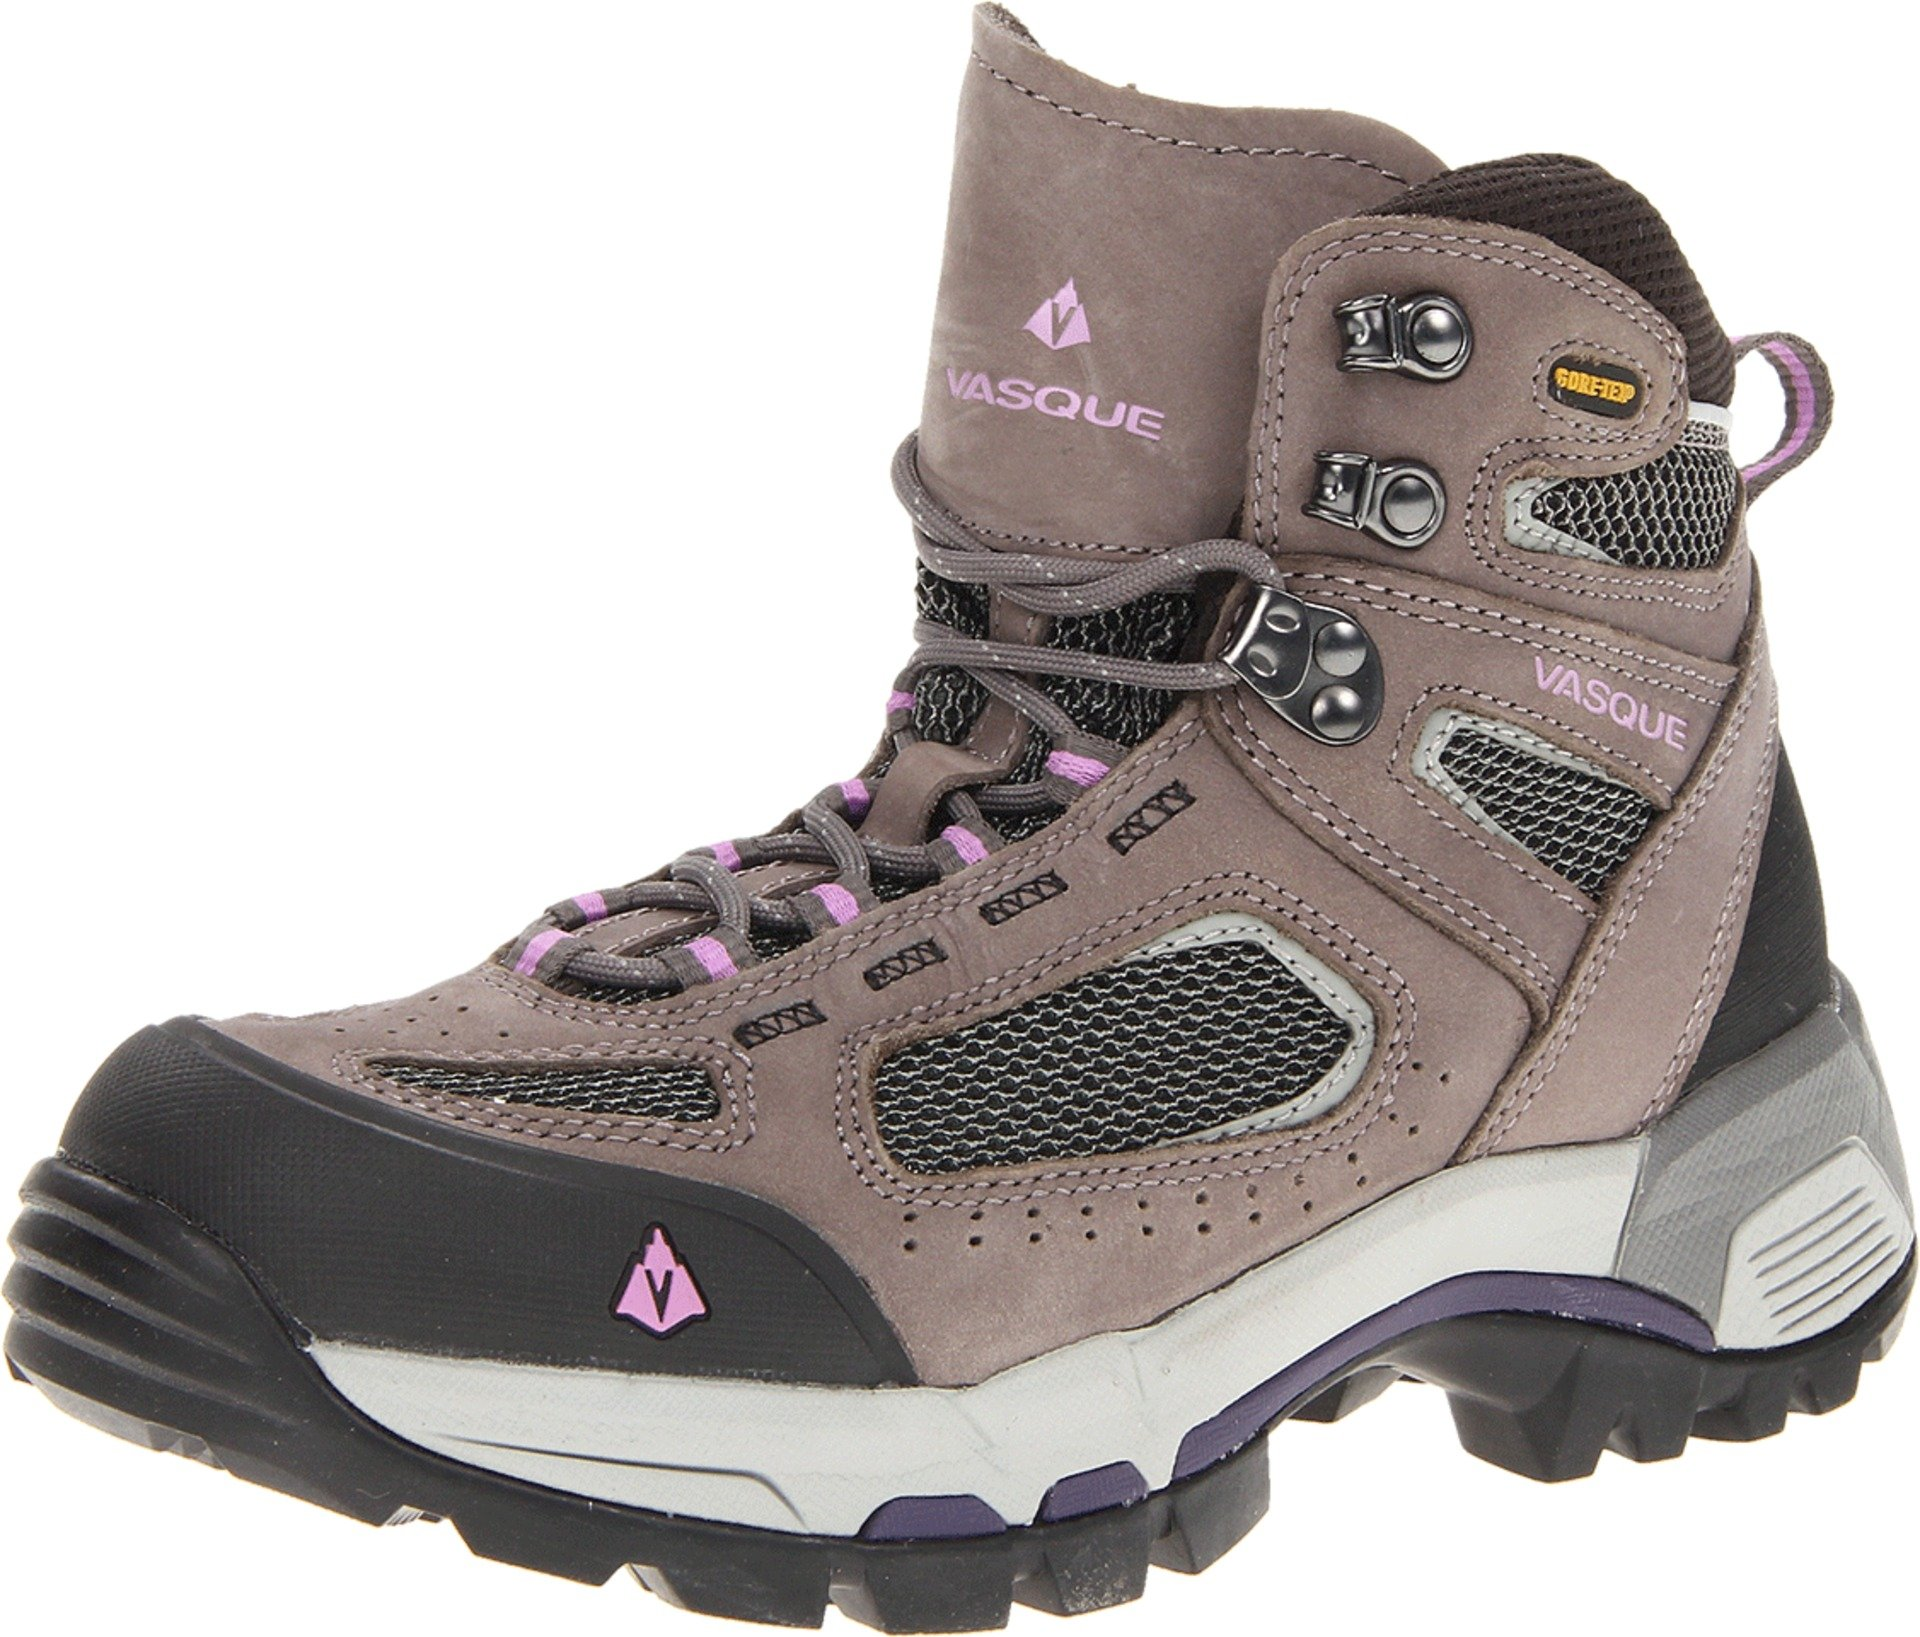 Vasque Women's Breeze 2.0 Gore-Tex Hiking Boot, Gargoyle/African Violet,10 M US